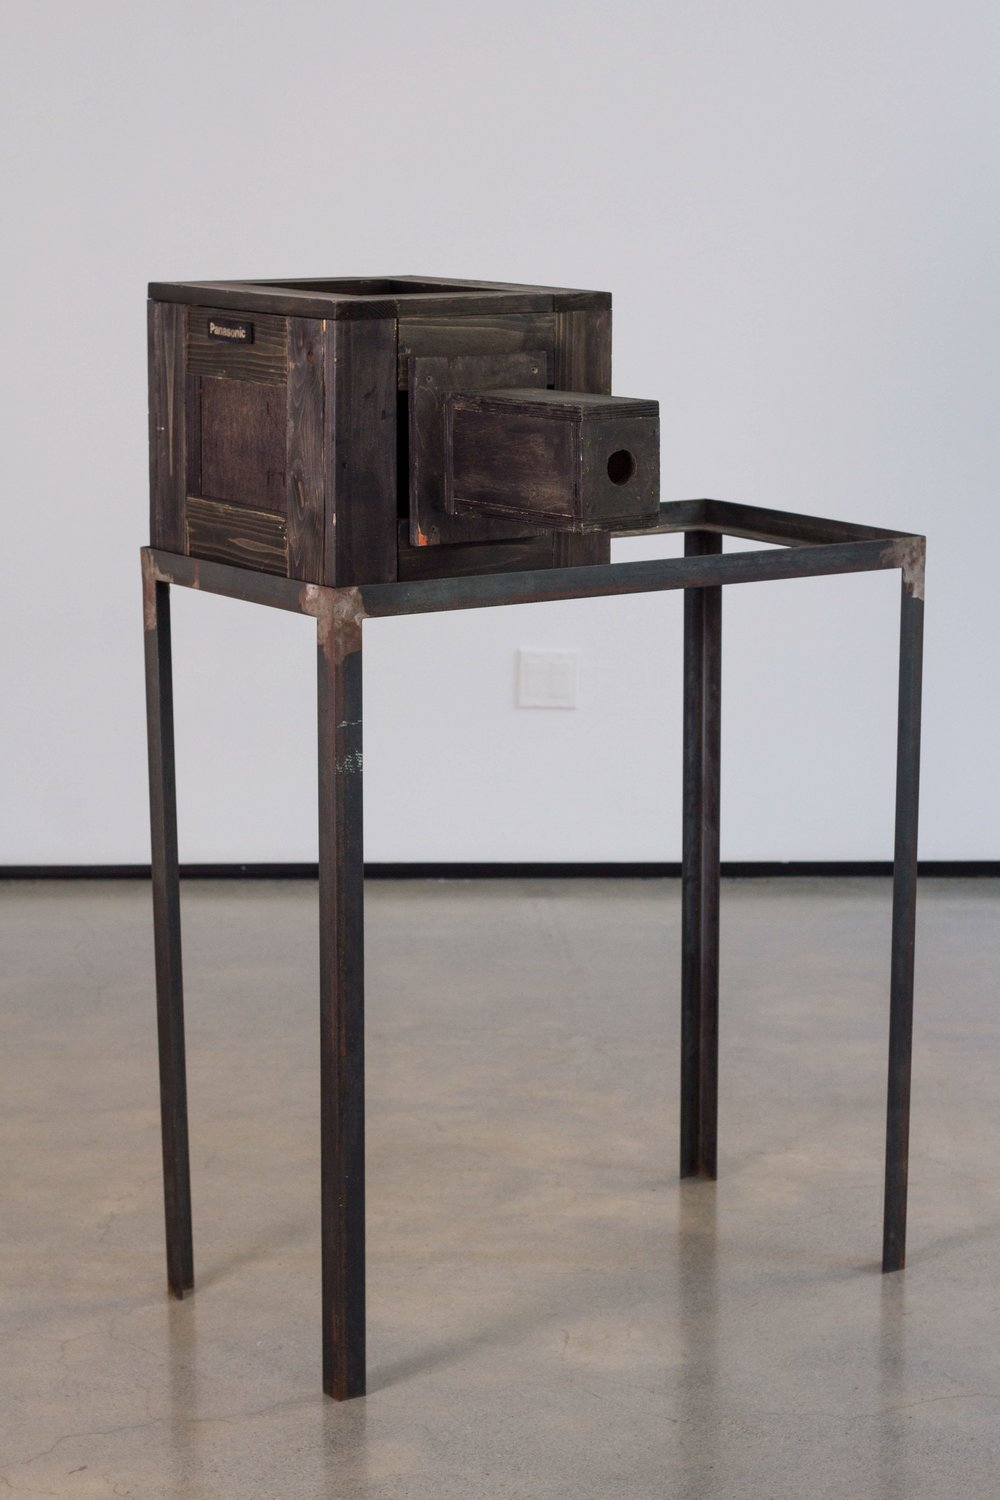 Tommy Hartung    Camera , 2009  Metal table frame and wood box  36 x 22 x 55in.